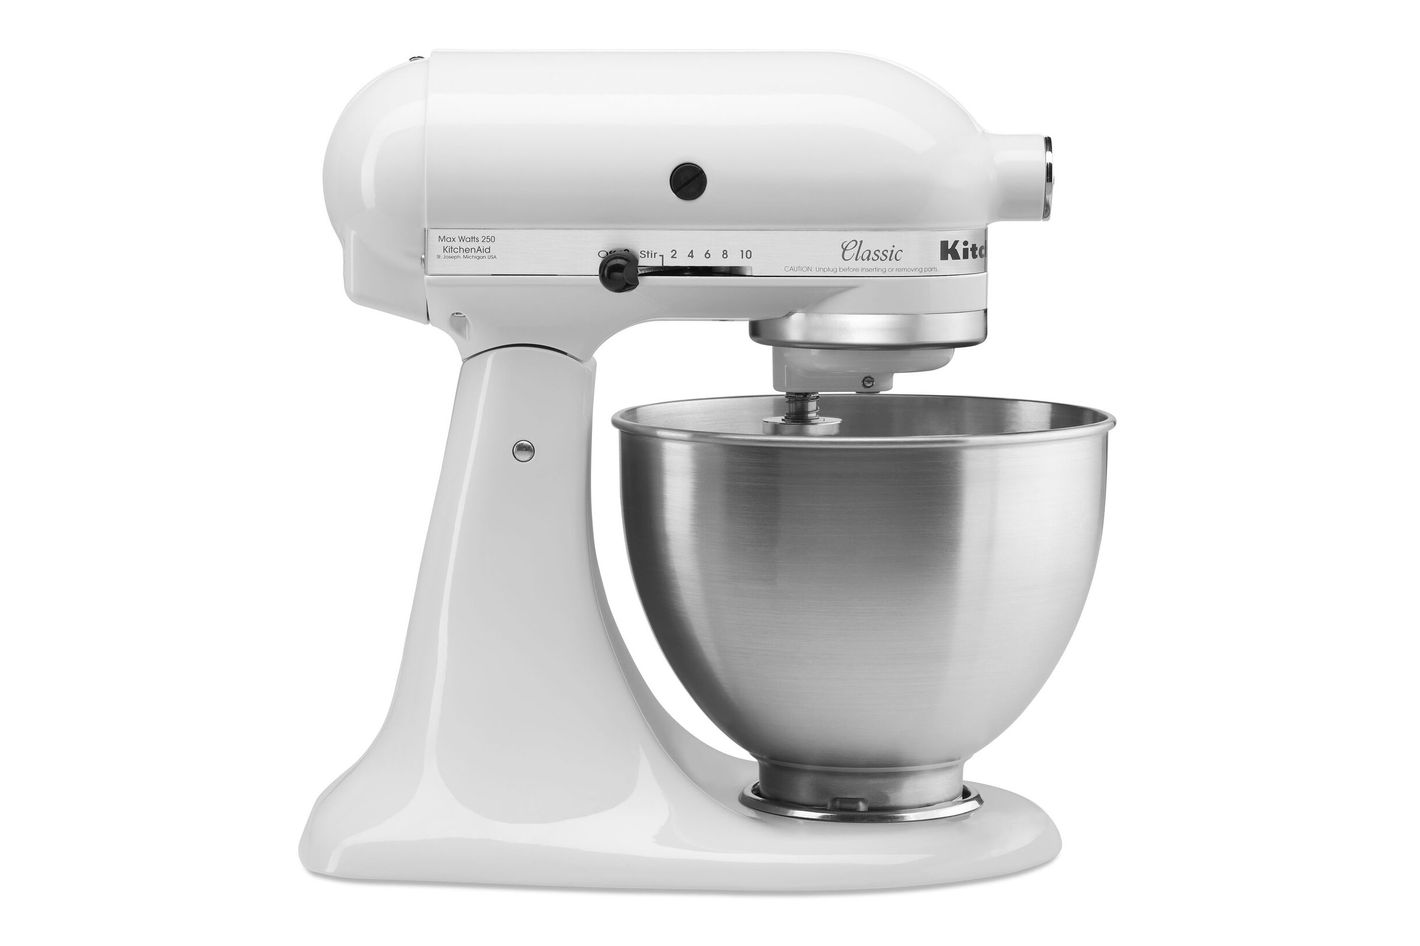 KitchenAid Classic Series 4.5-Quart Tilt-Head Stand Mixer, White